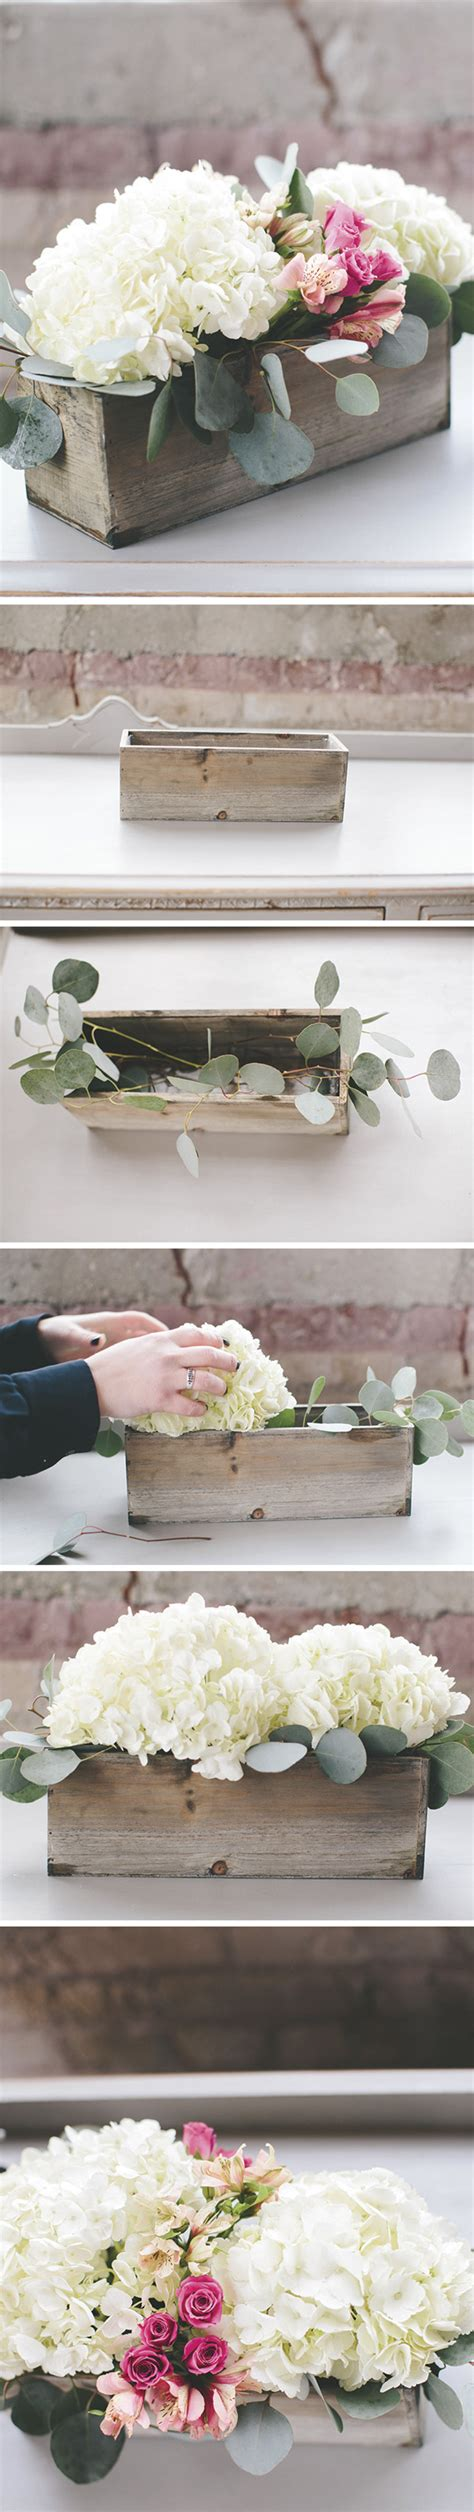 shabby chic wedding ideas diy 10 creative diy wedding centerpieces with tutorials